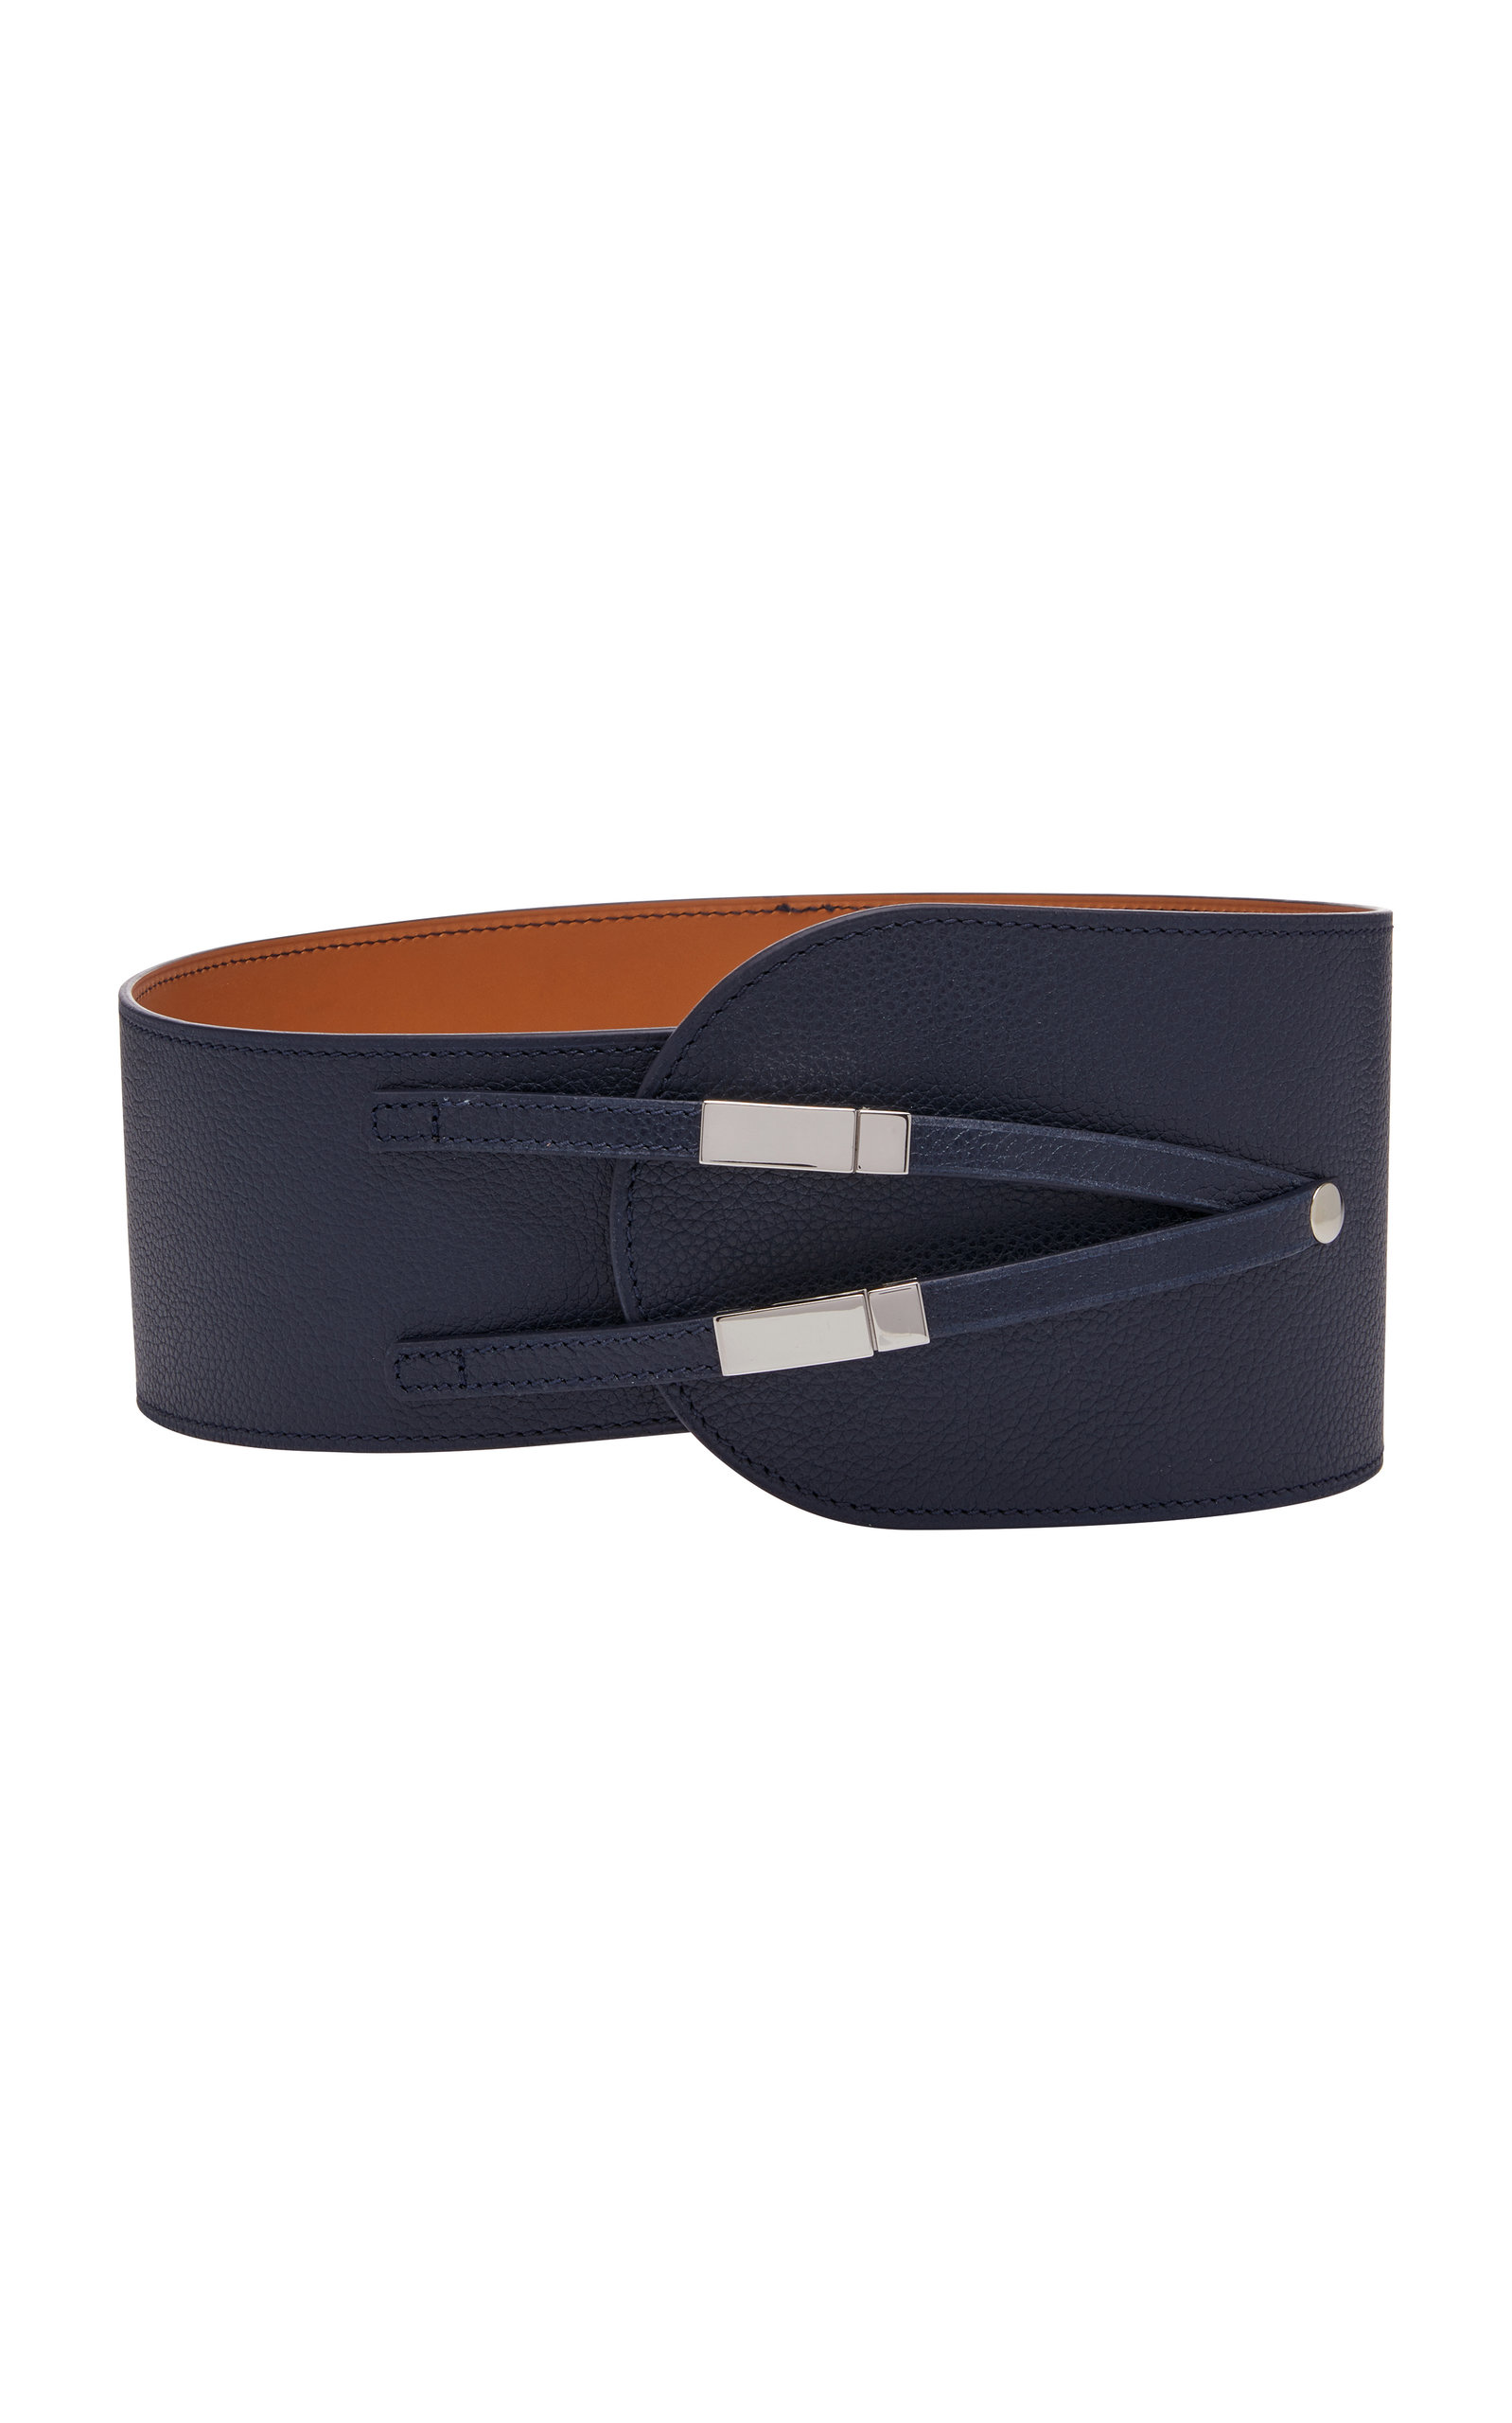 MAISON VAINCOURT M'O EXCLUSIVE KYOTO WIDE LEATHER BELT